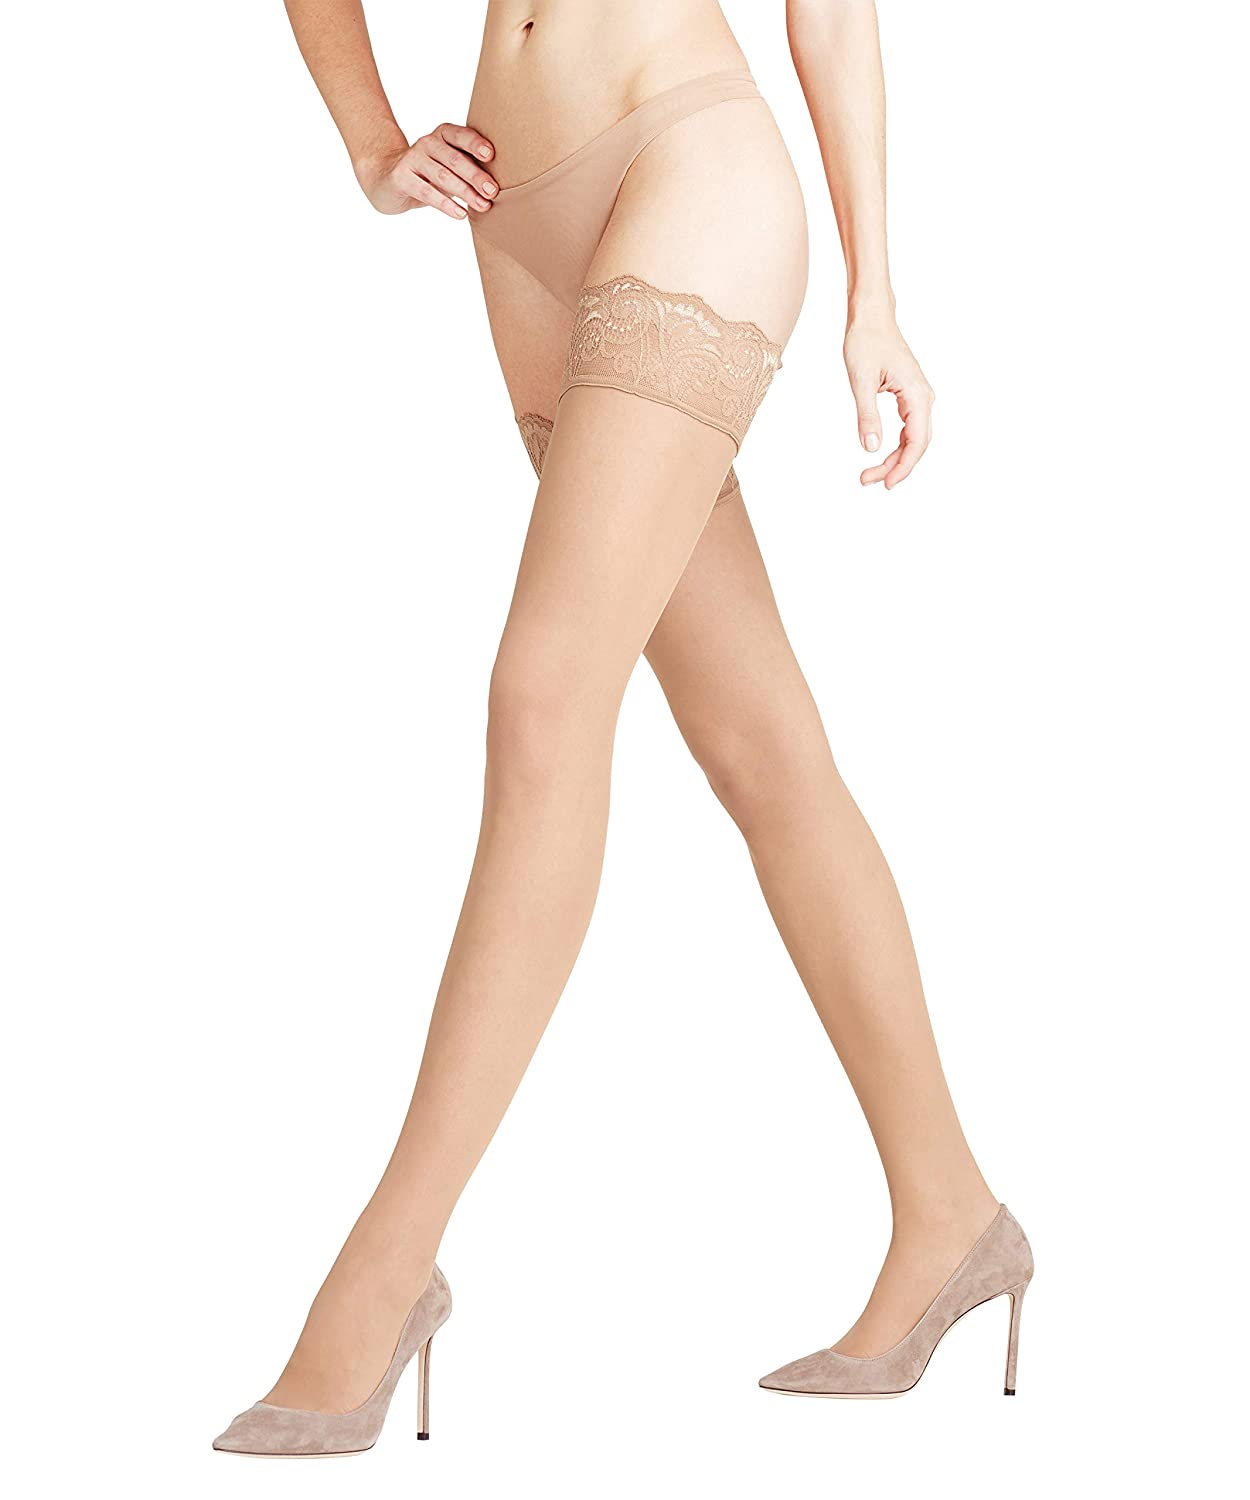 36864474d FALKE Women Matt Deluxe 20 denier hold-ups - 1 pair